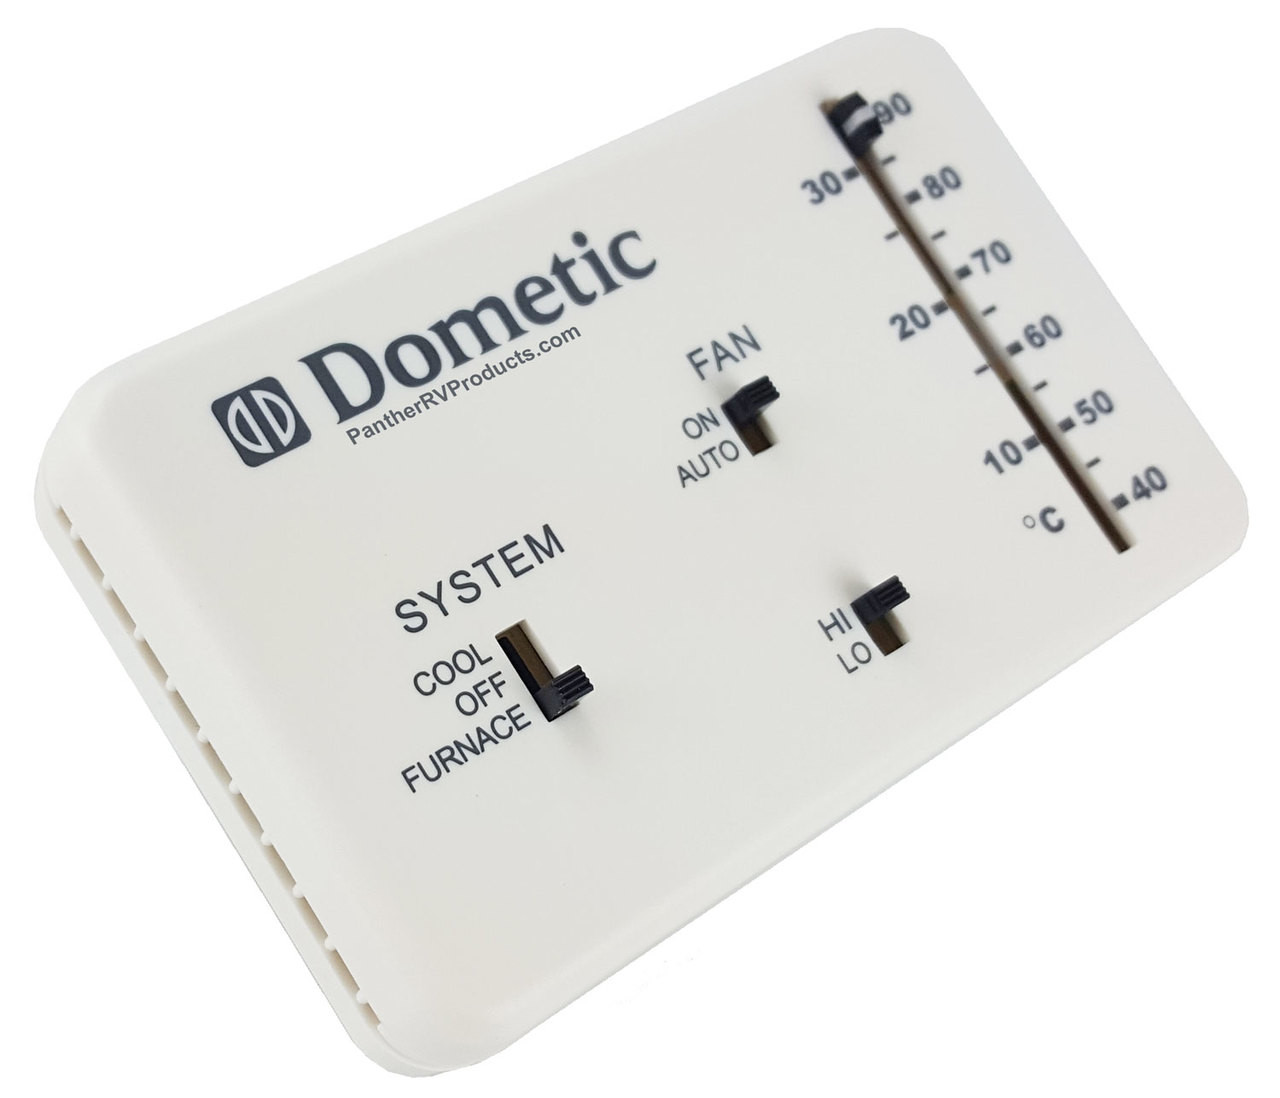 Dometic™ (Duo-Therm) 3106995.032 Thermostat 6-Wire Analog Control Heat/CoolPanther RV Products